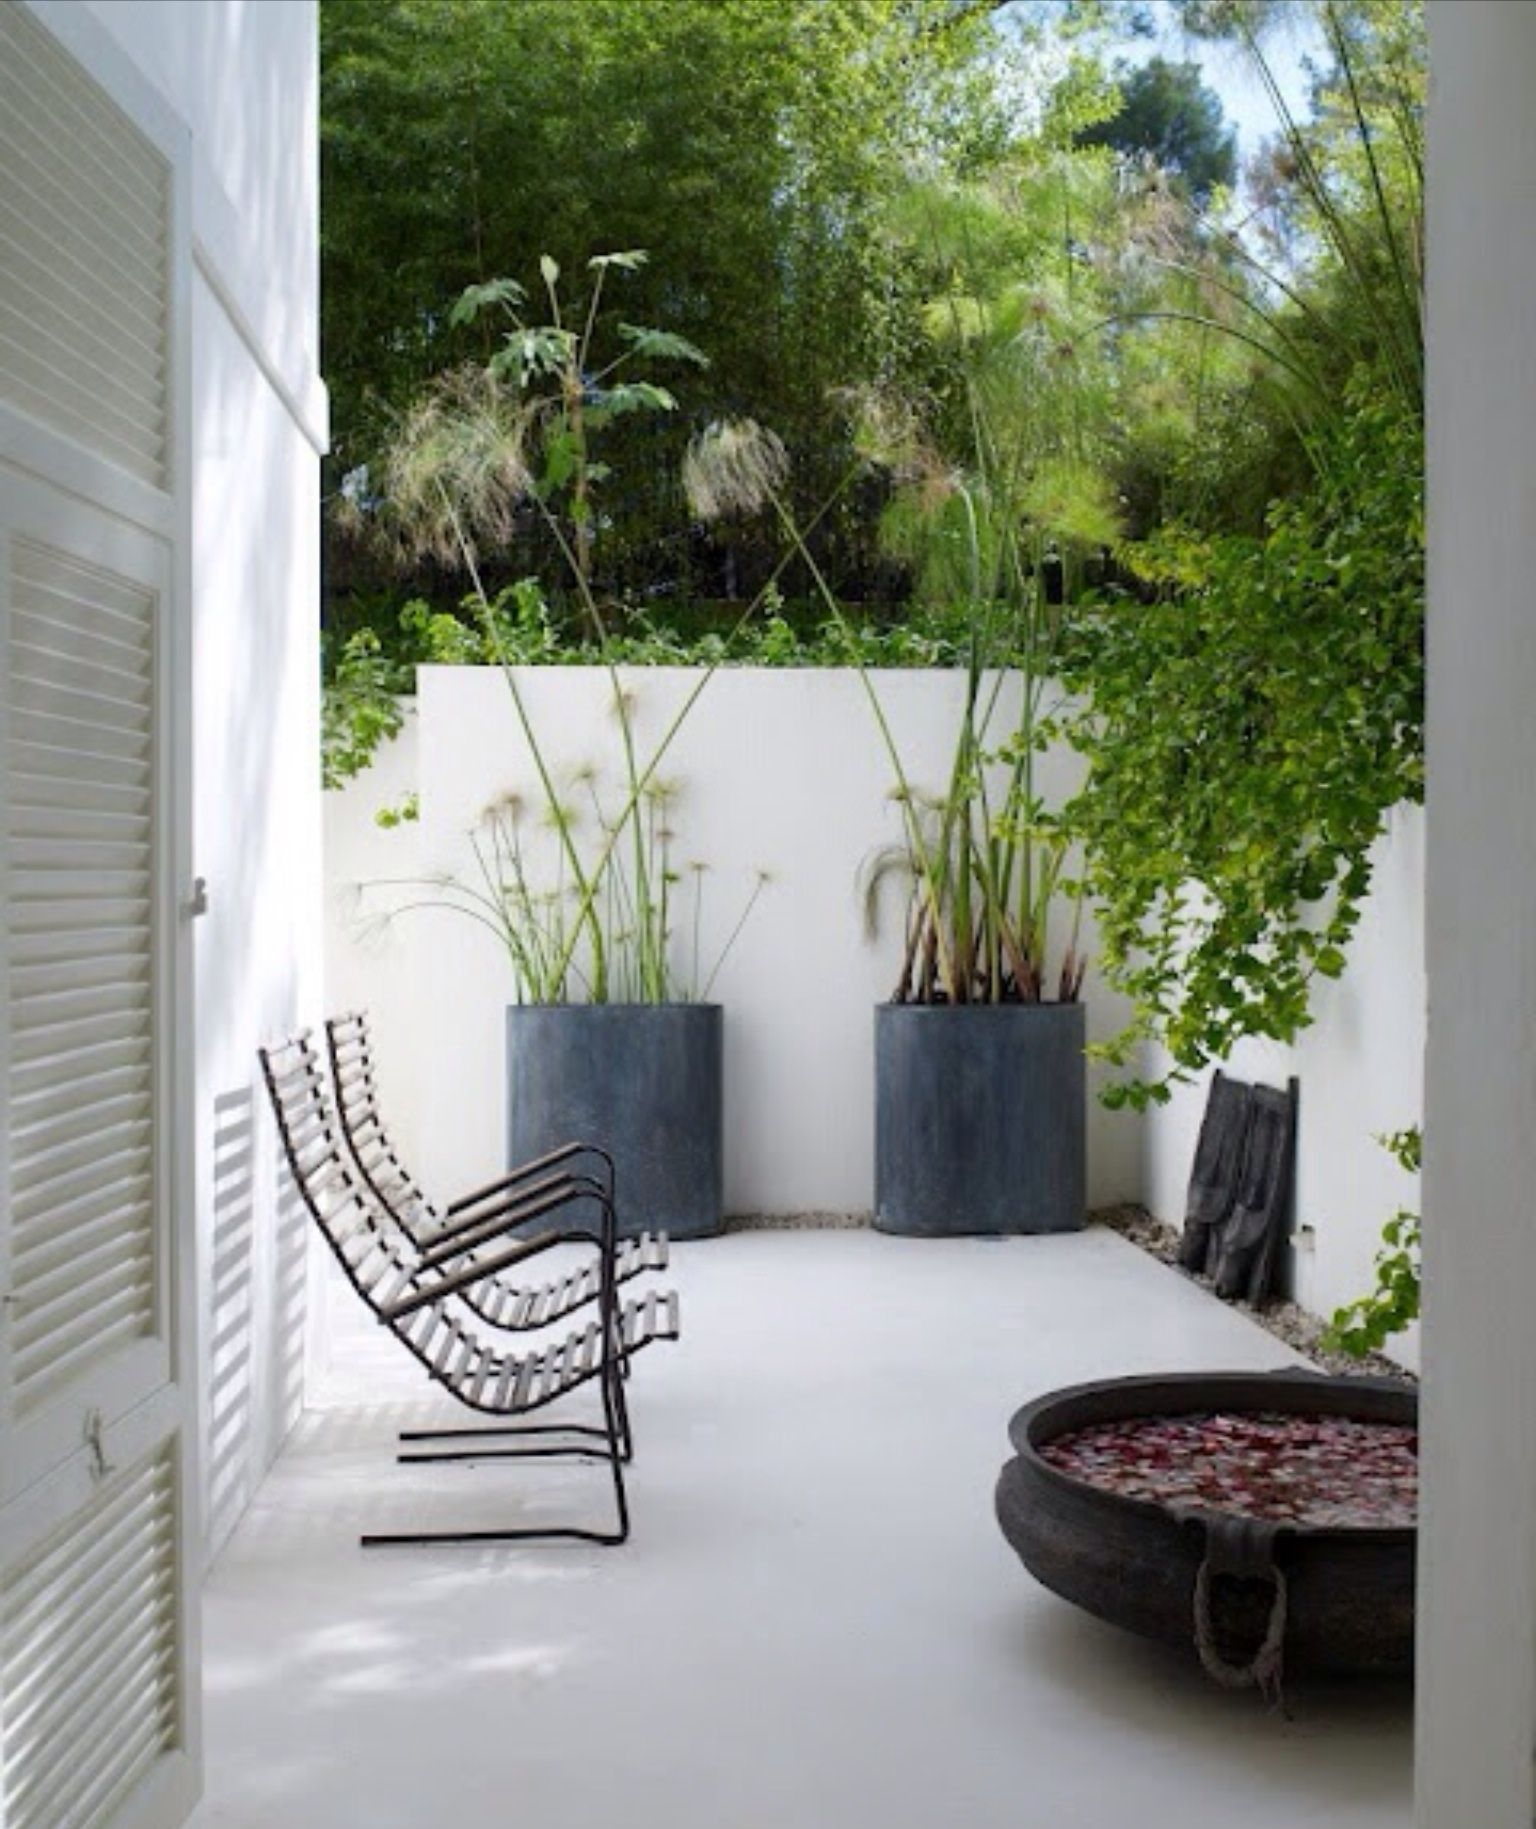 Contemporary | Minimalist garden, Garden spaces, Small ...